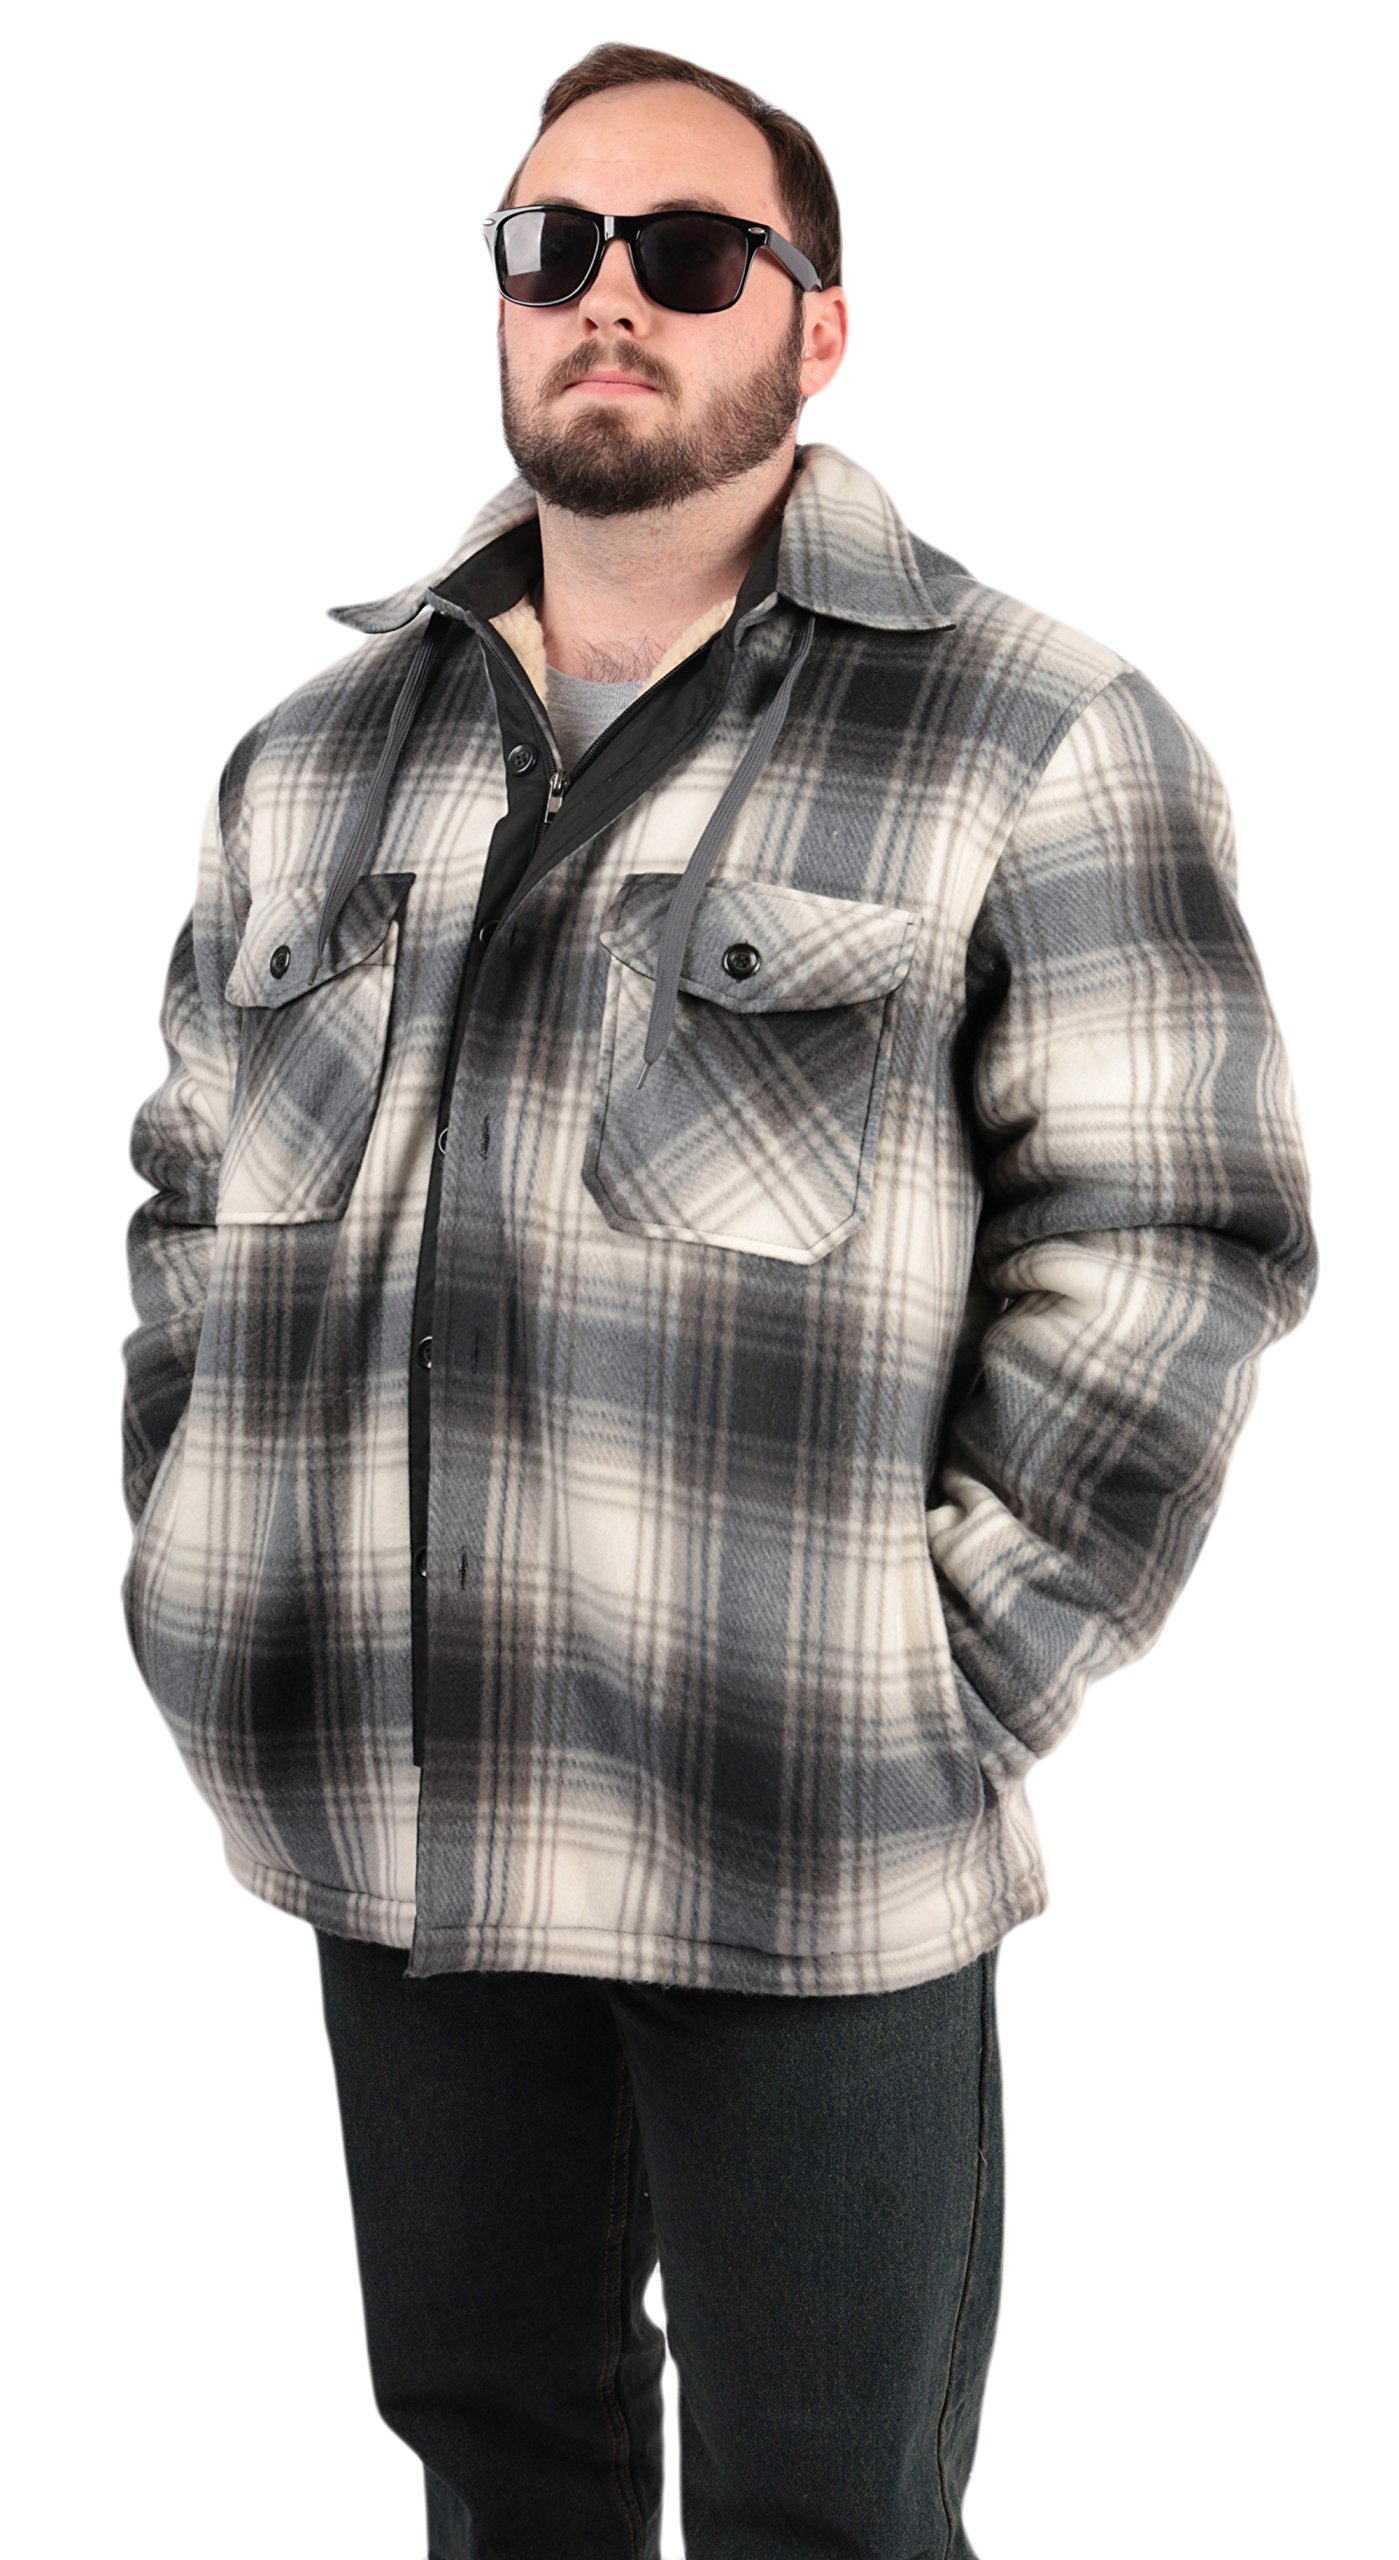 Woodland Supply Co. Men's Plaid Hooded Button Up Sherpa Lined Shirt Jacket,Large,Black/Grey